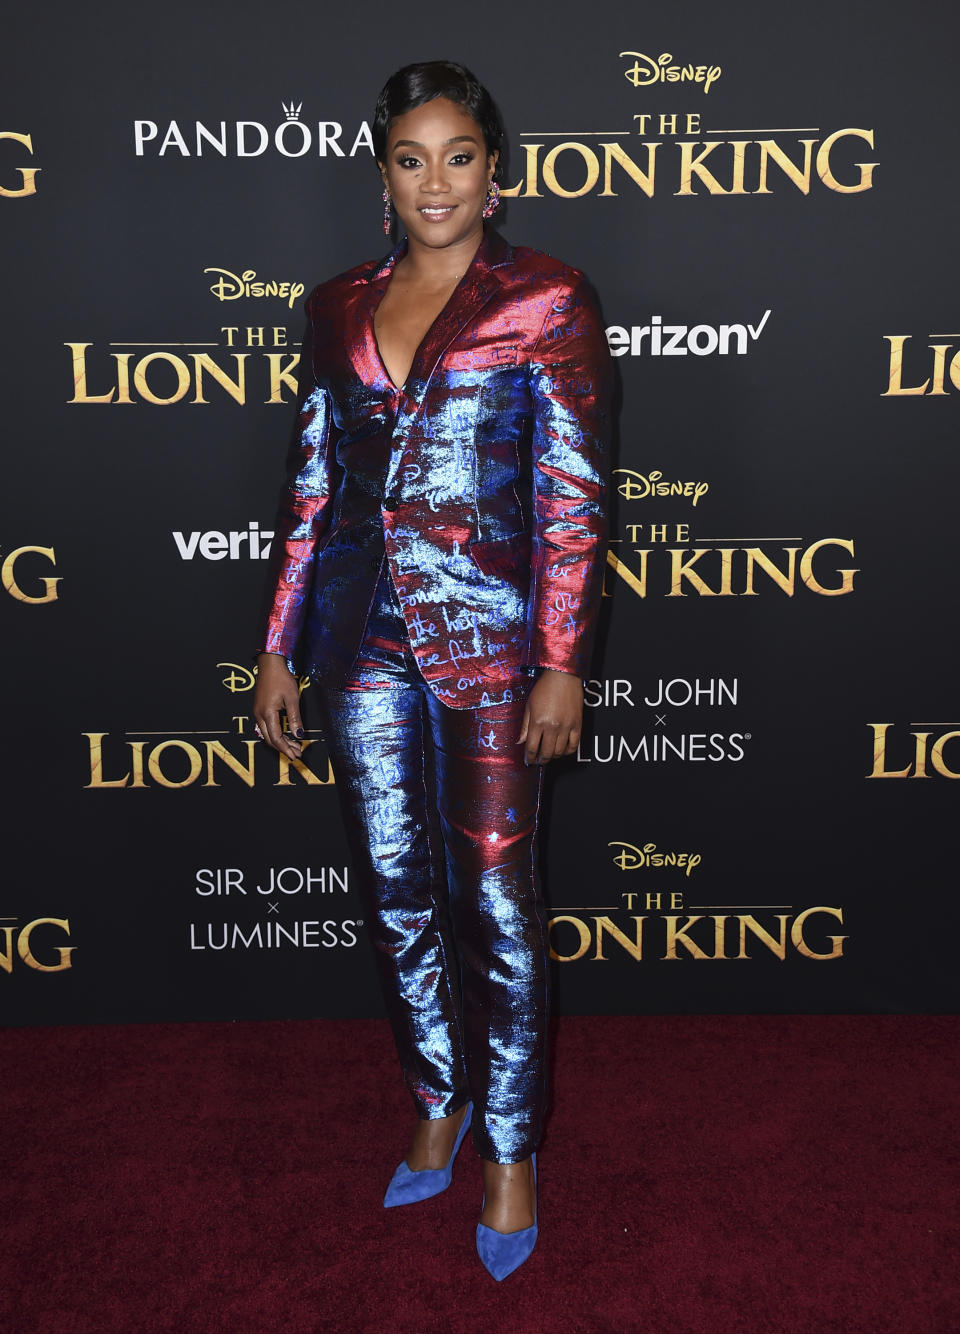 """Tiffany Haddish arrives at the world premiere of """"The Lion King"""" on Tuesday, July 9, 2019, at the Dolby Theatre in Los Angeles. (Photo by Jordan Strauss/Invision/AP)"""